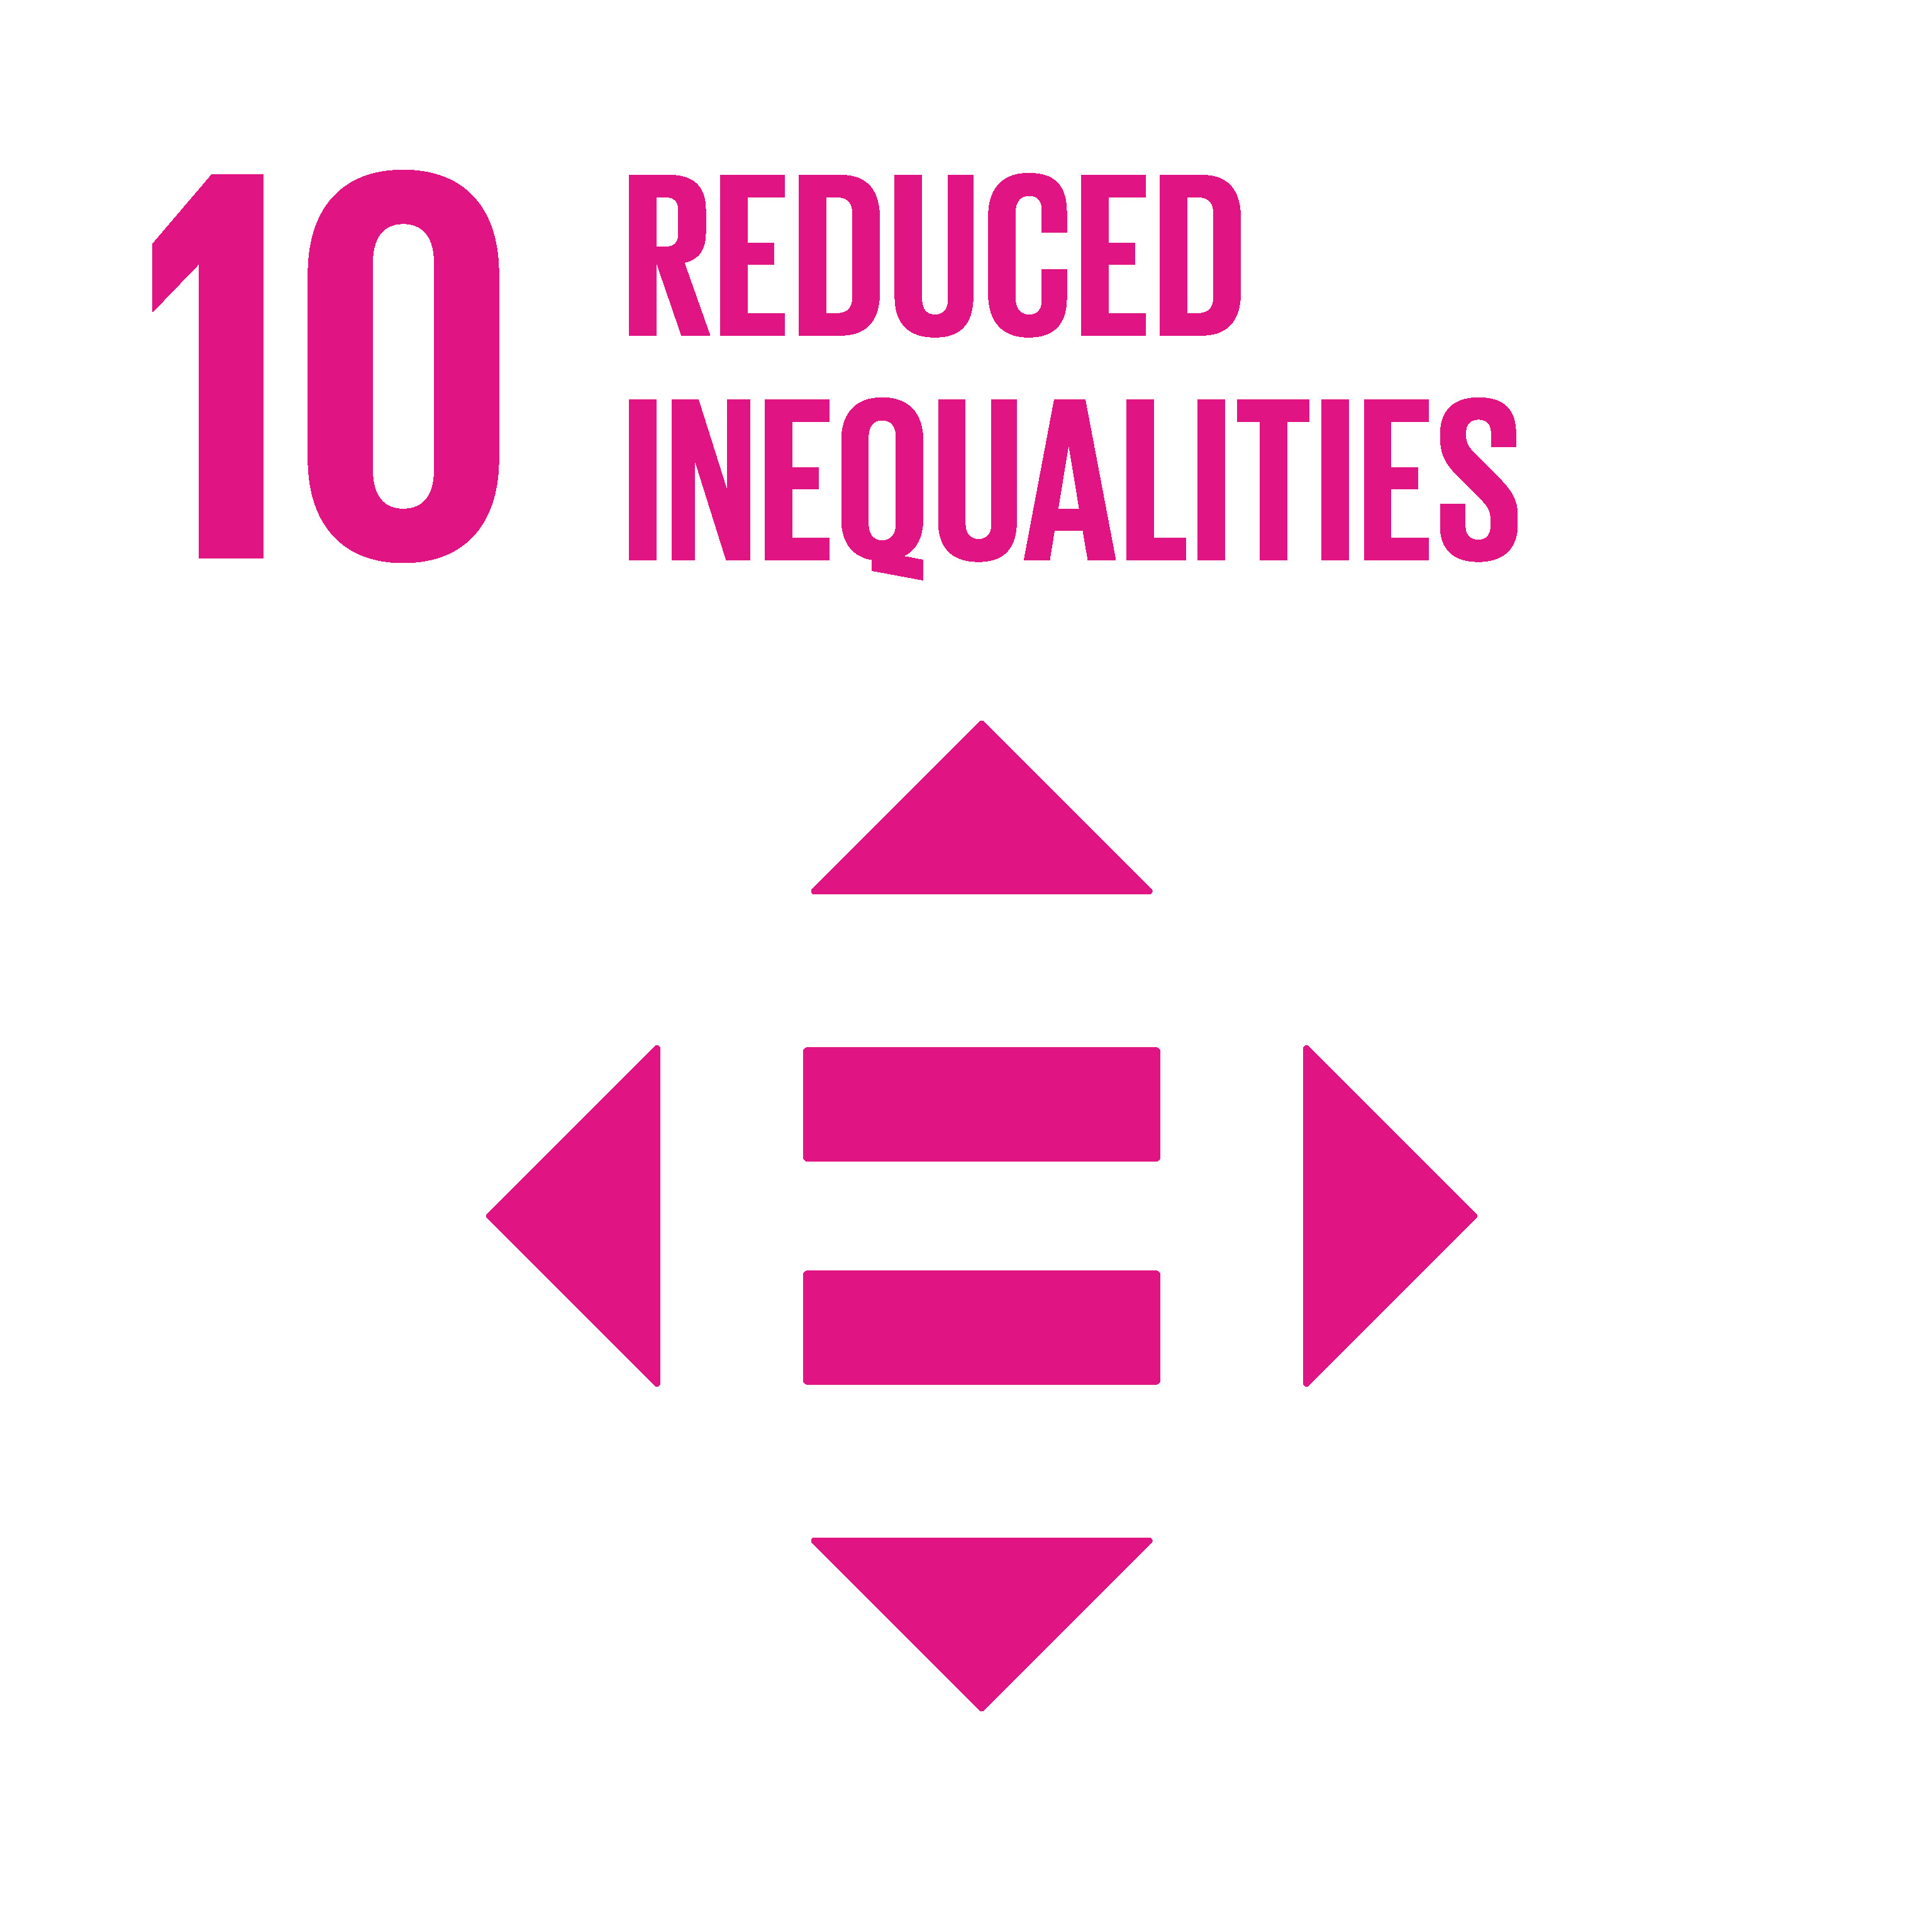 SDG 10 - Reduced inequalites